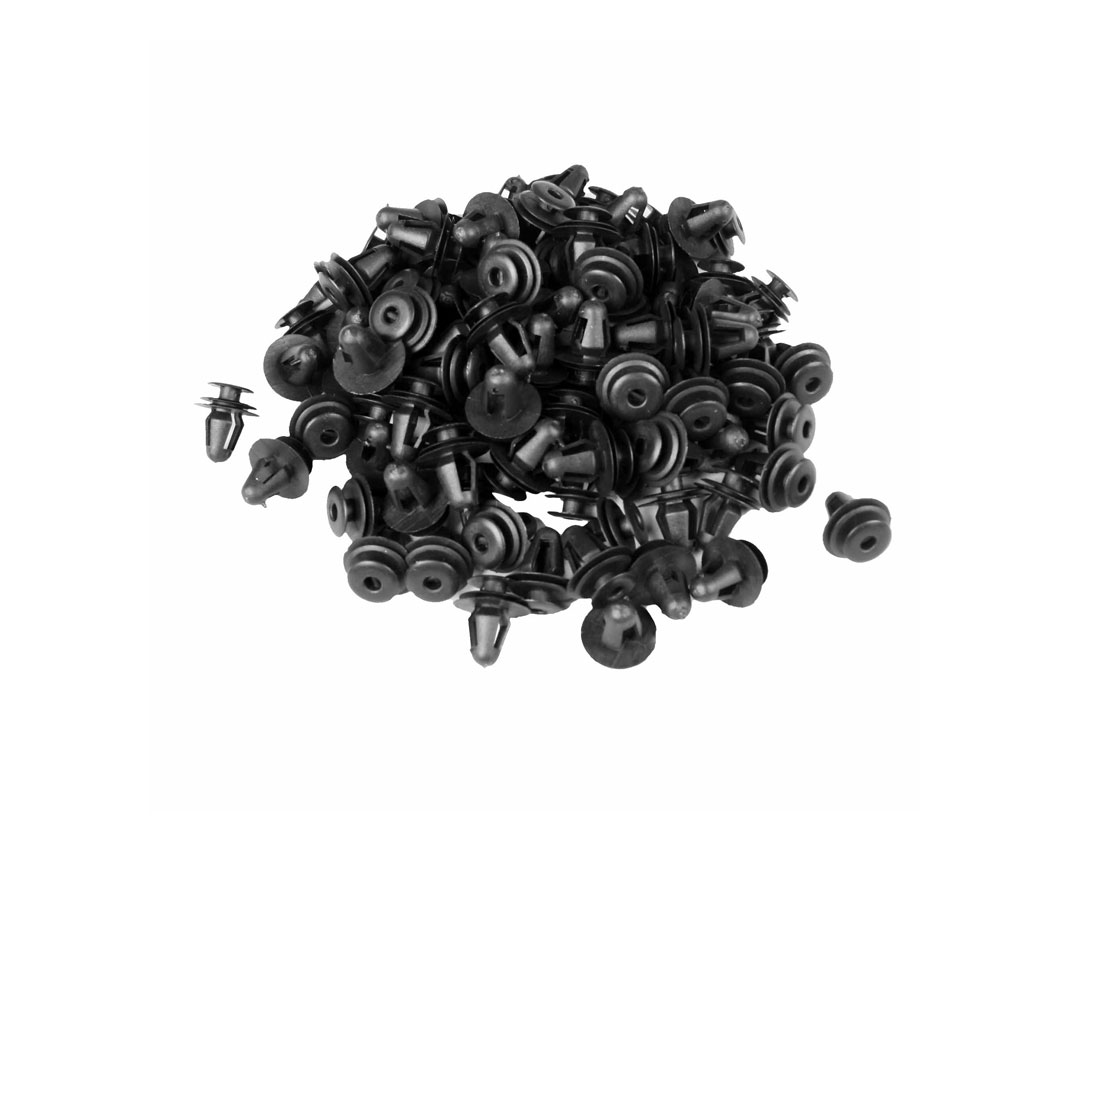 100 Pcs Black Car Fender Plastic Rivet Fastener 17mm x 14mm x 10mm